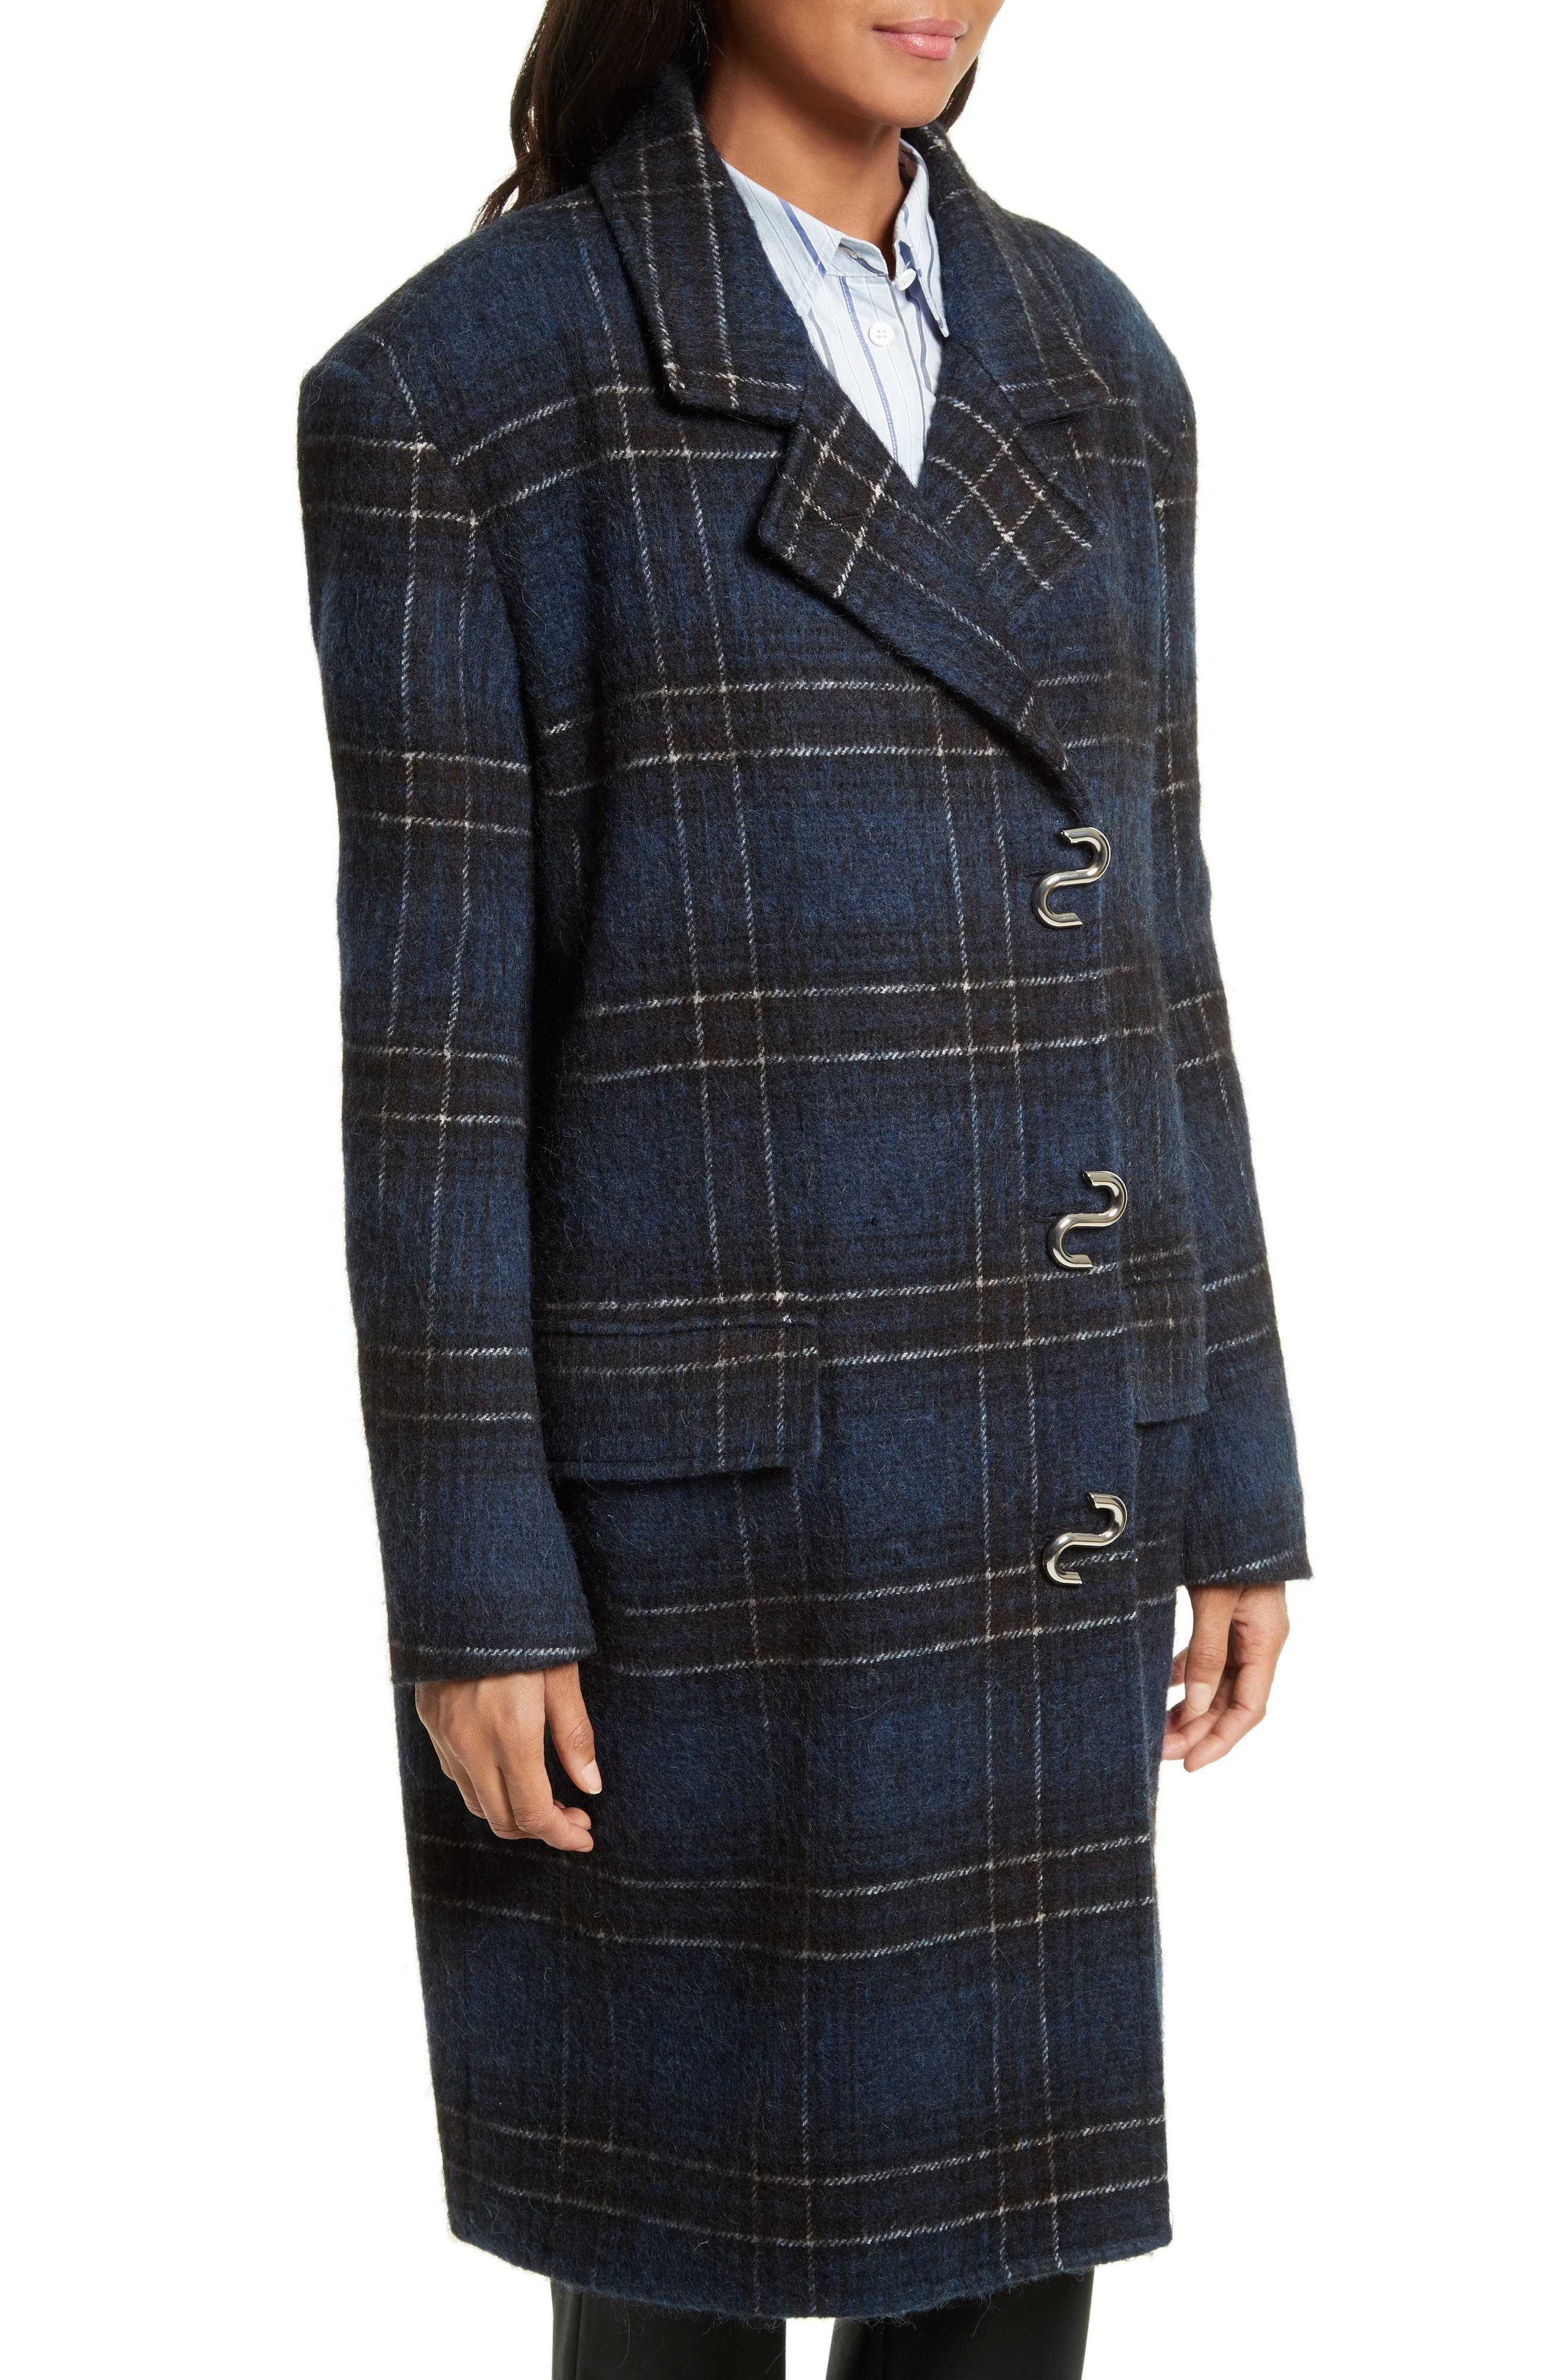 Dominic Plaid Oversize Coat,                             Alternate thumbnail 4, color,                             402